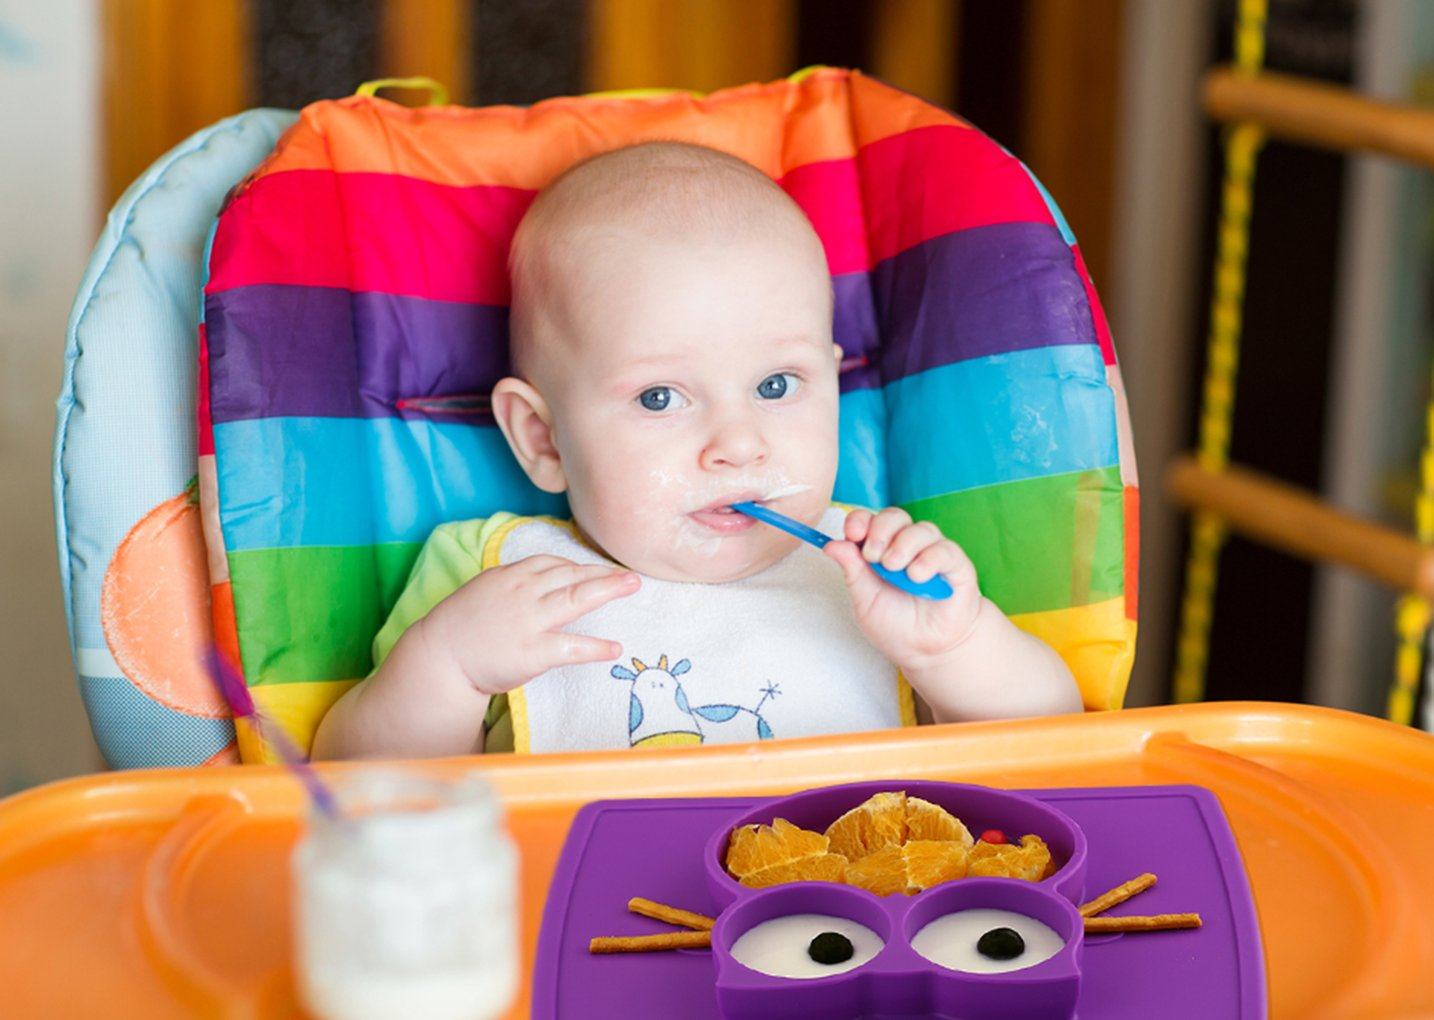 Dishwasher and Microwave Safe with Spoon Fork Baby Silicone Placemat Non-Slip Feeding Plate for Toddlers Babies Kids with Strong Suction Fits Most Highchair Trays BPA-Free FDA Approved